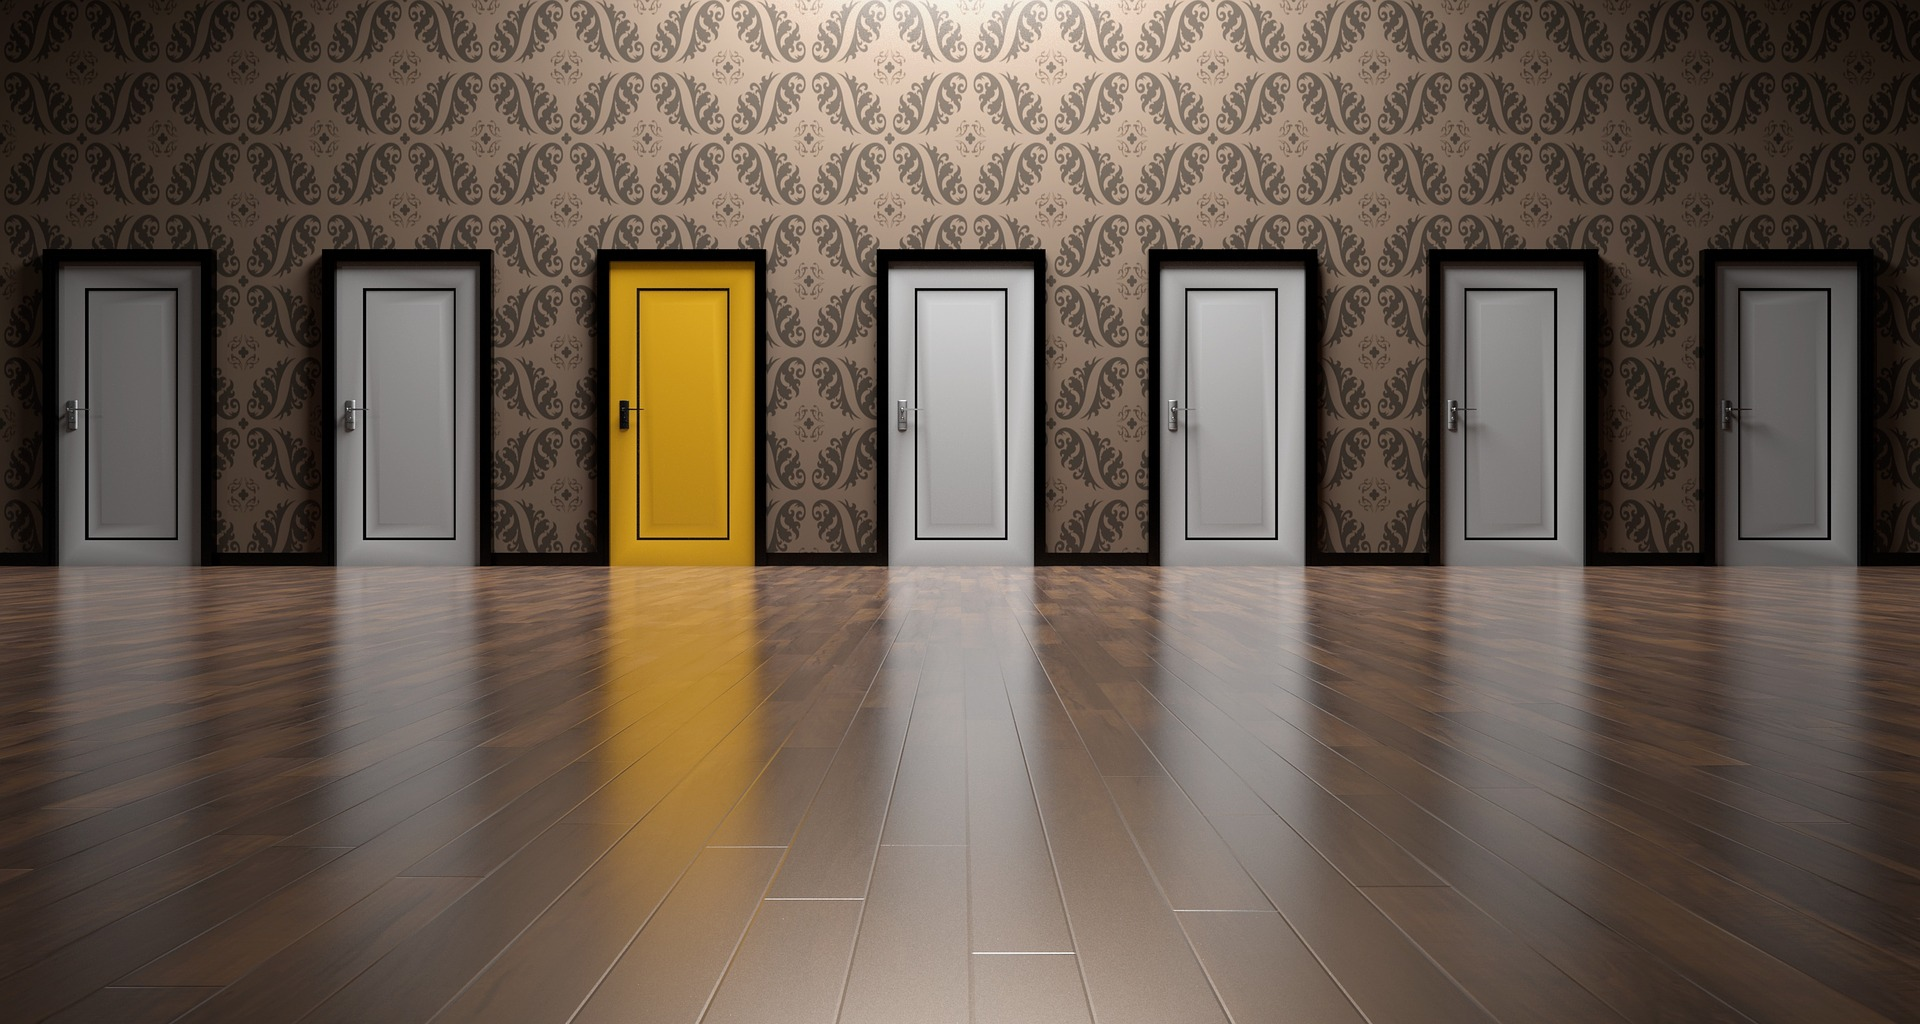 multiple job offers signified by a yellow doors in between 6 white doors